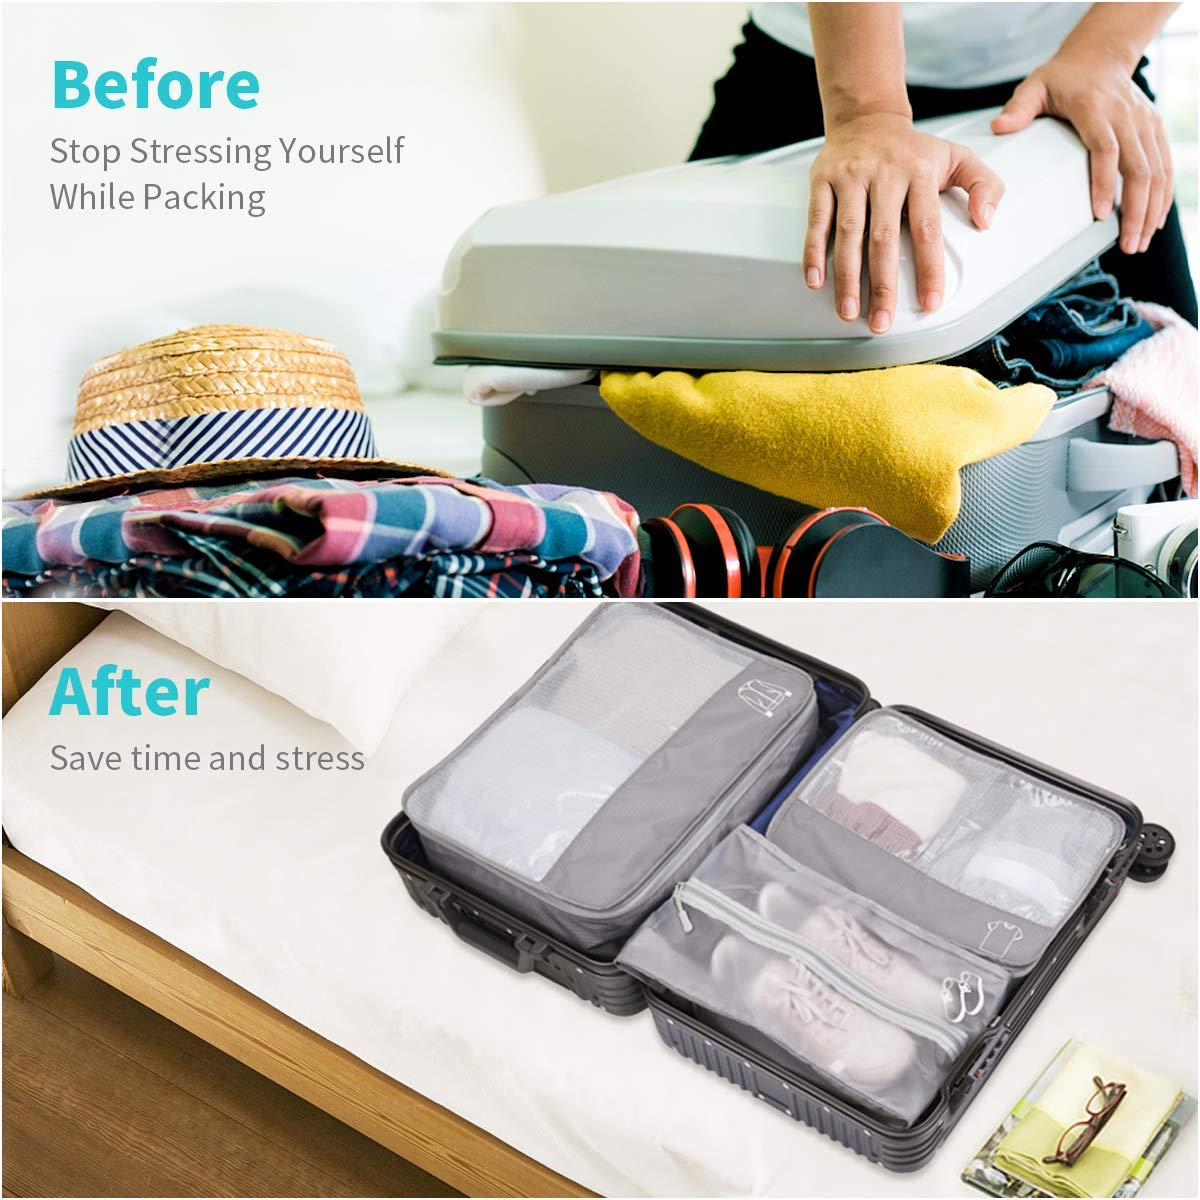 Storage Packing Cubes, Morpilot 6-Sets Best Value Luggage Organizers, Storage Bags Suitcase - Compressible Storage Cubes for Holiday Travel, Laundry & Home Storage